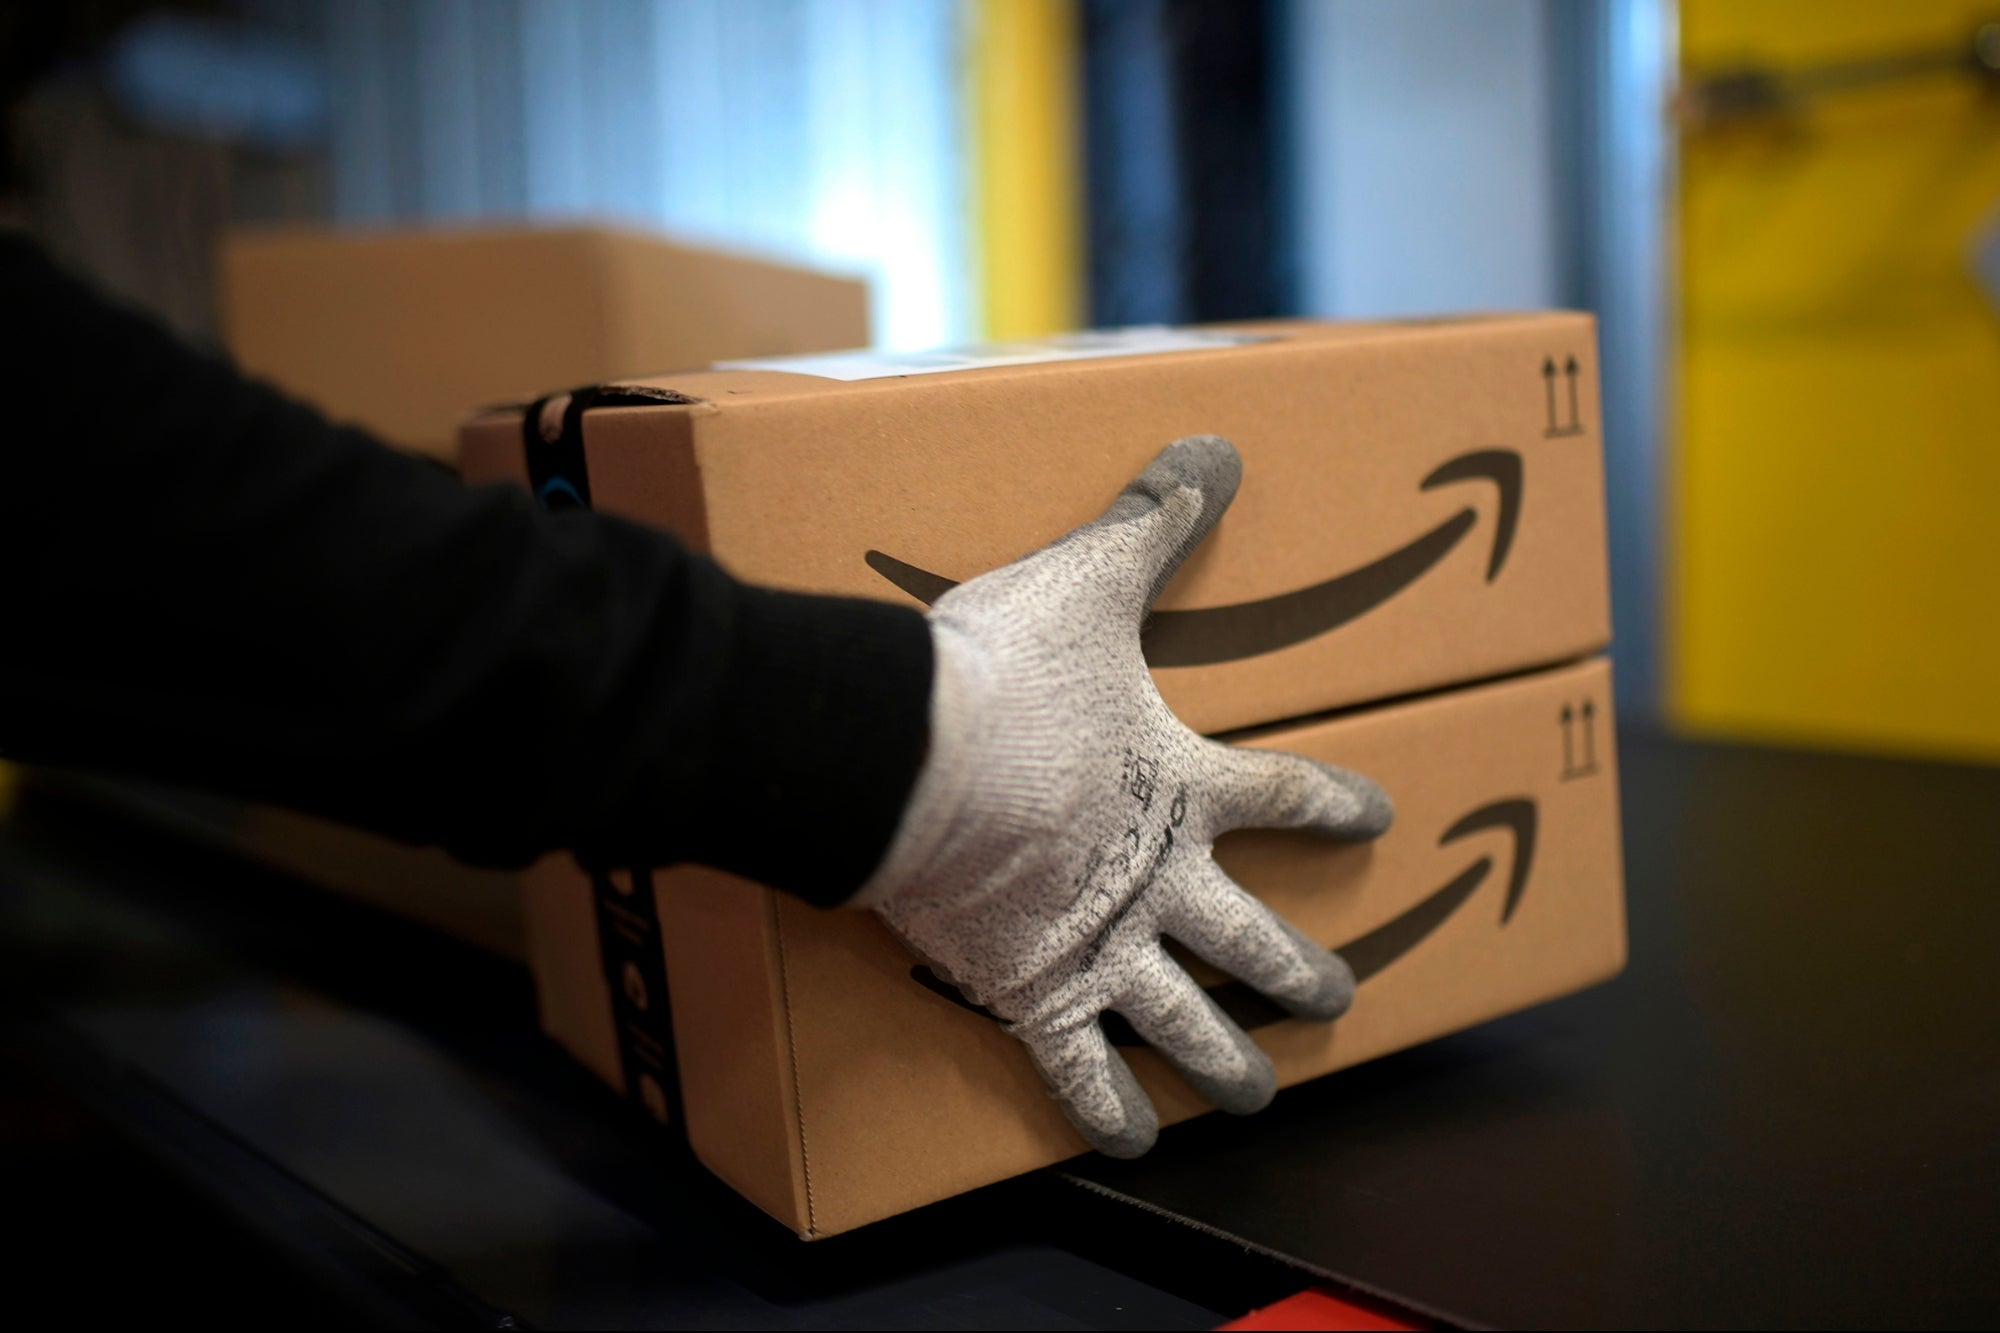 How to Start a 'Fulfillment by Amazon' Business and Find Your Winning Product